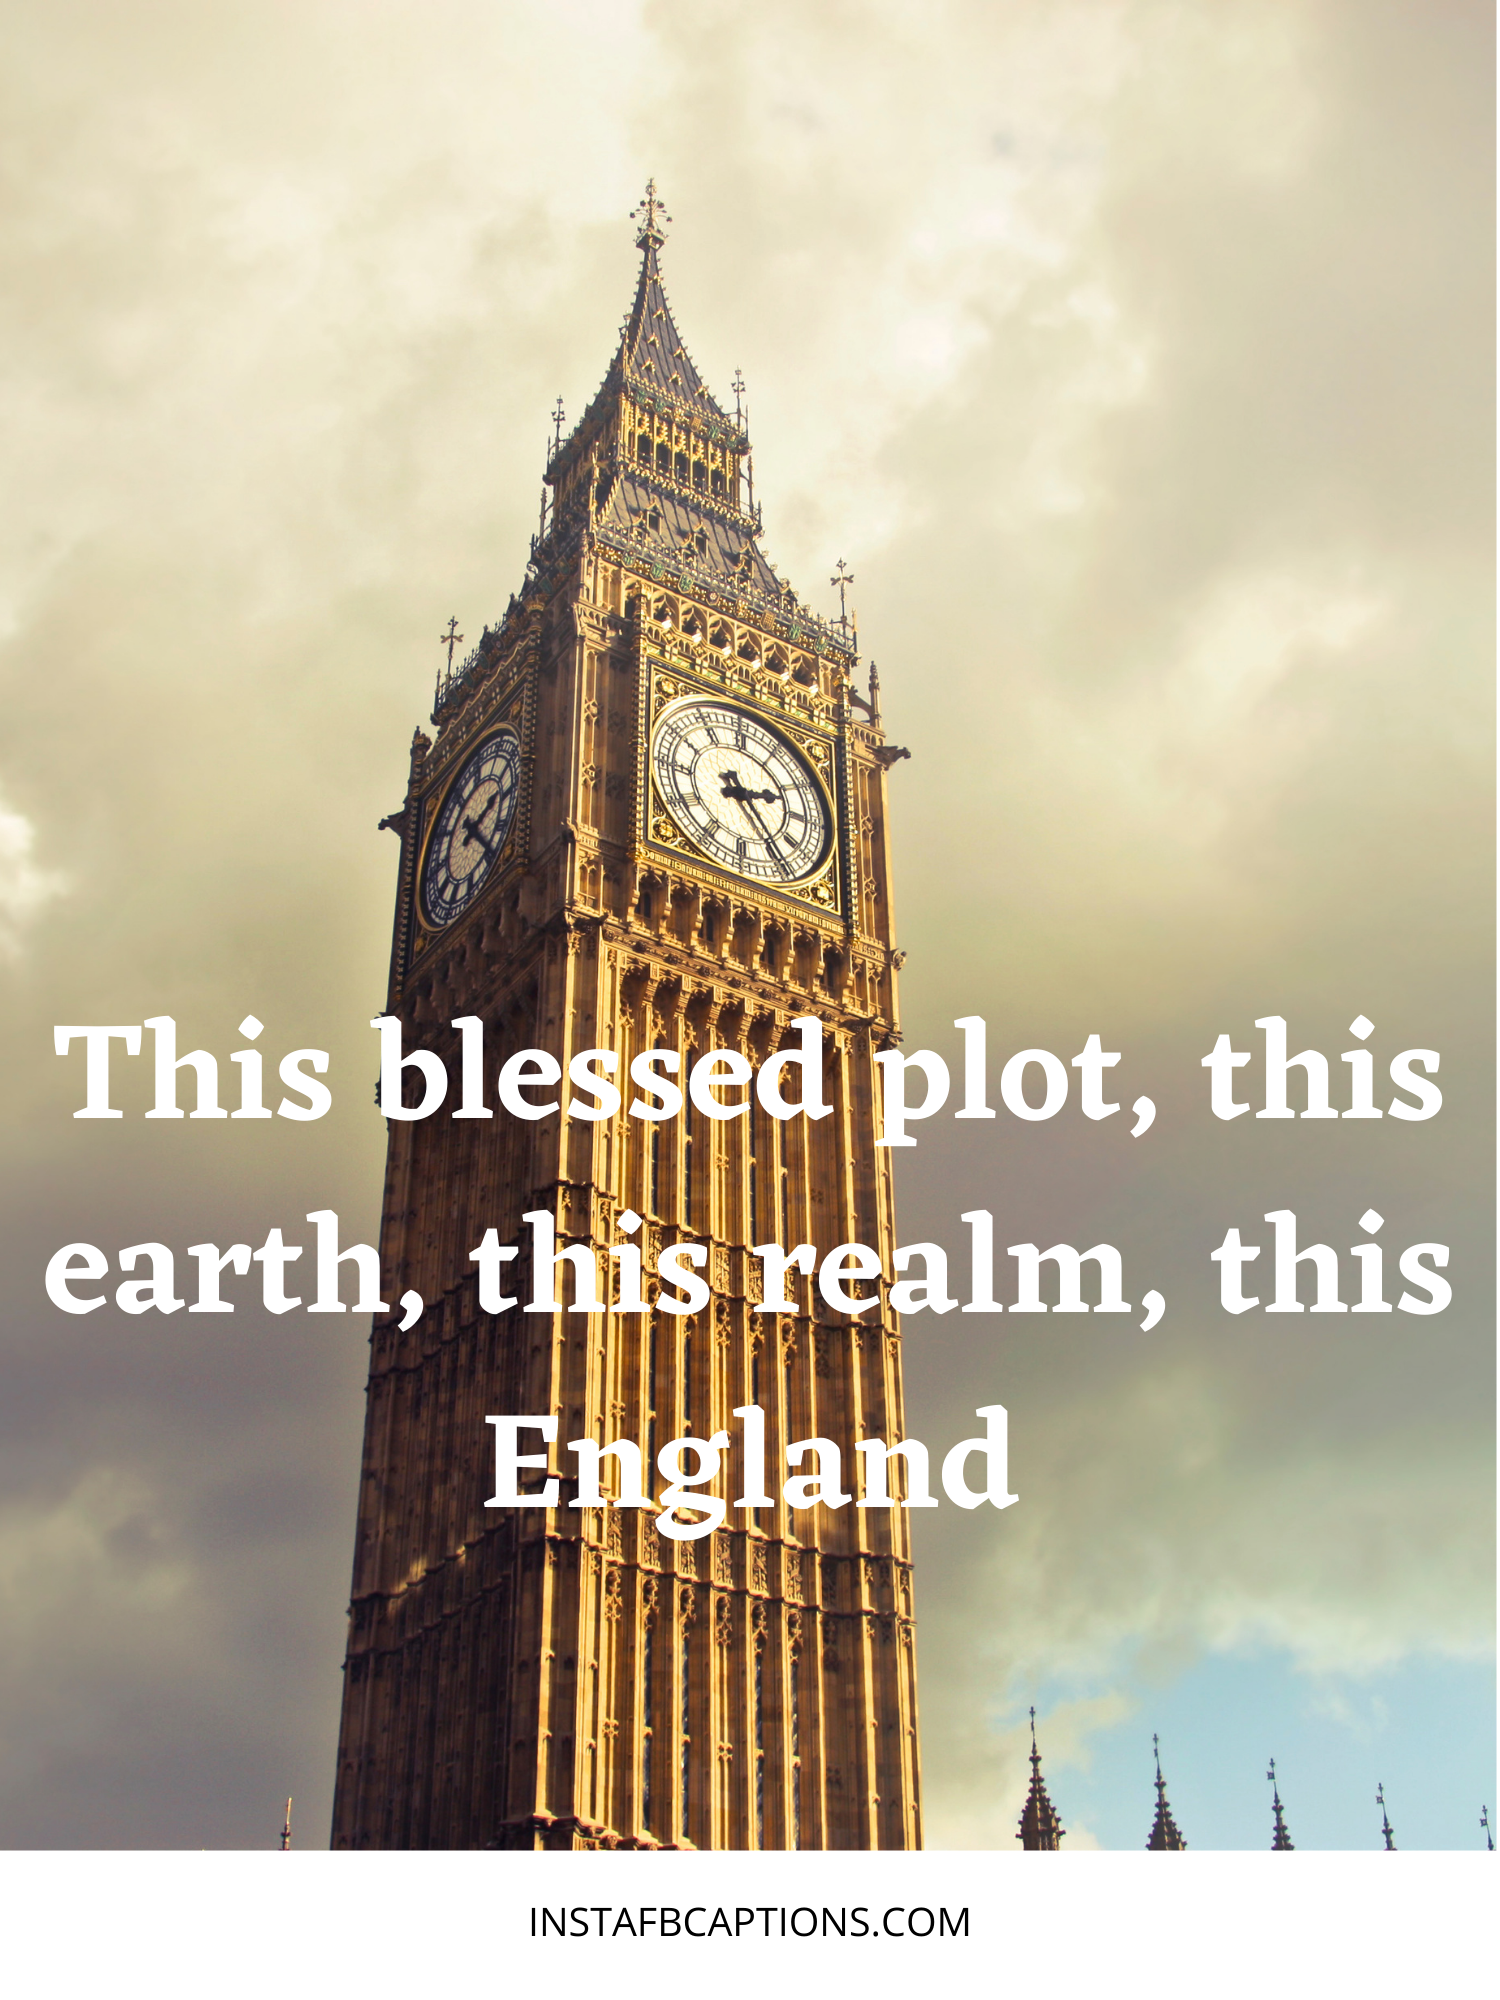 Quotes On London That Are Rich In History  - Quotes on London that are Rich in History - 99+ LONDON Instagram Captions for London Diaries, Bus, & Dreams in 2021